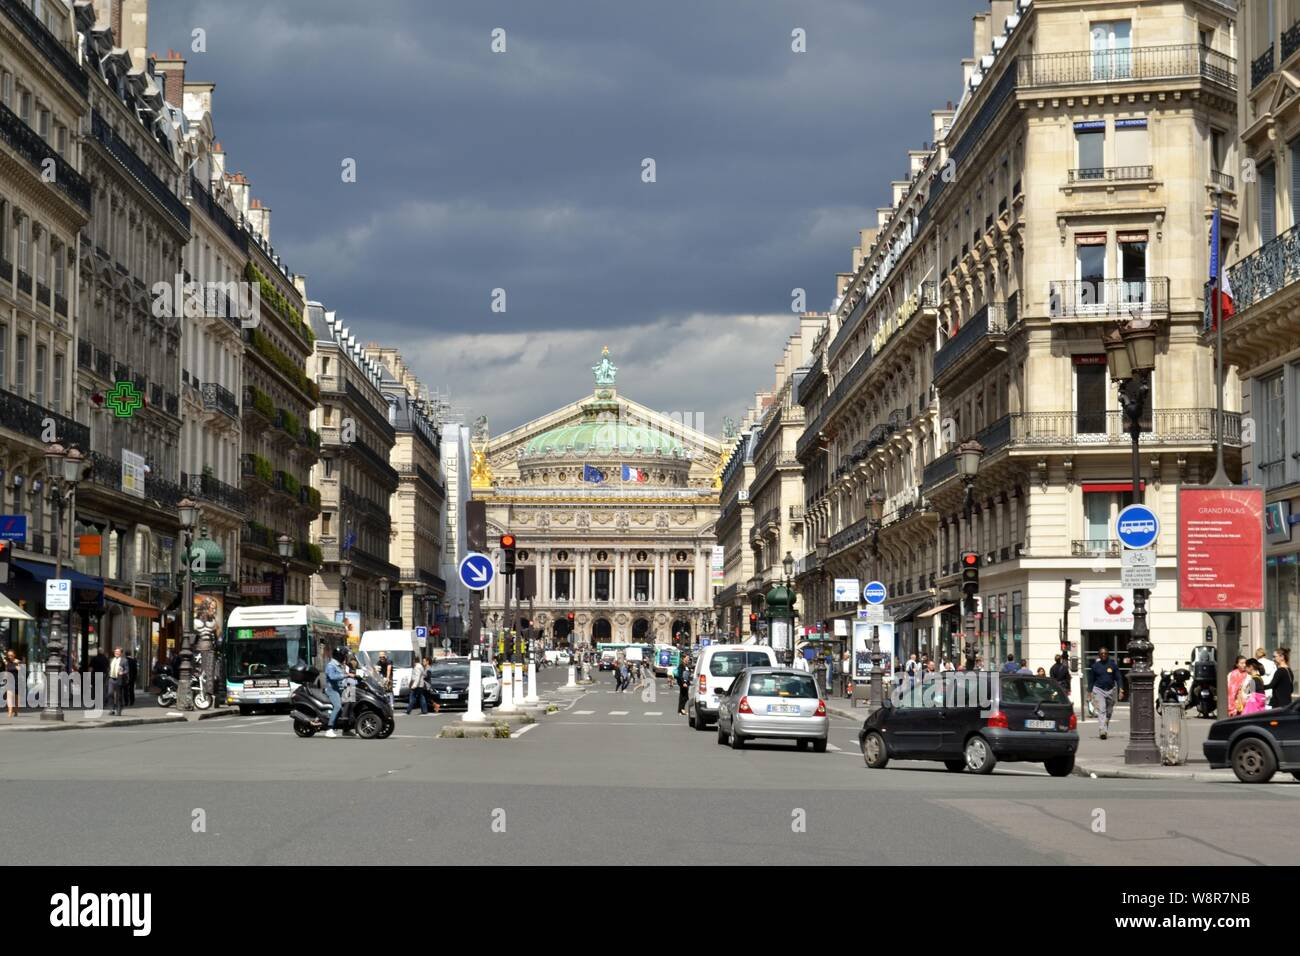 Paris/France - August 19, 2014: View to the Opera de Paris at the end of the Avenue de l'Opera illuminated by the sun before the storm. Stock Photo